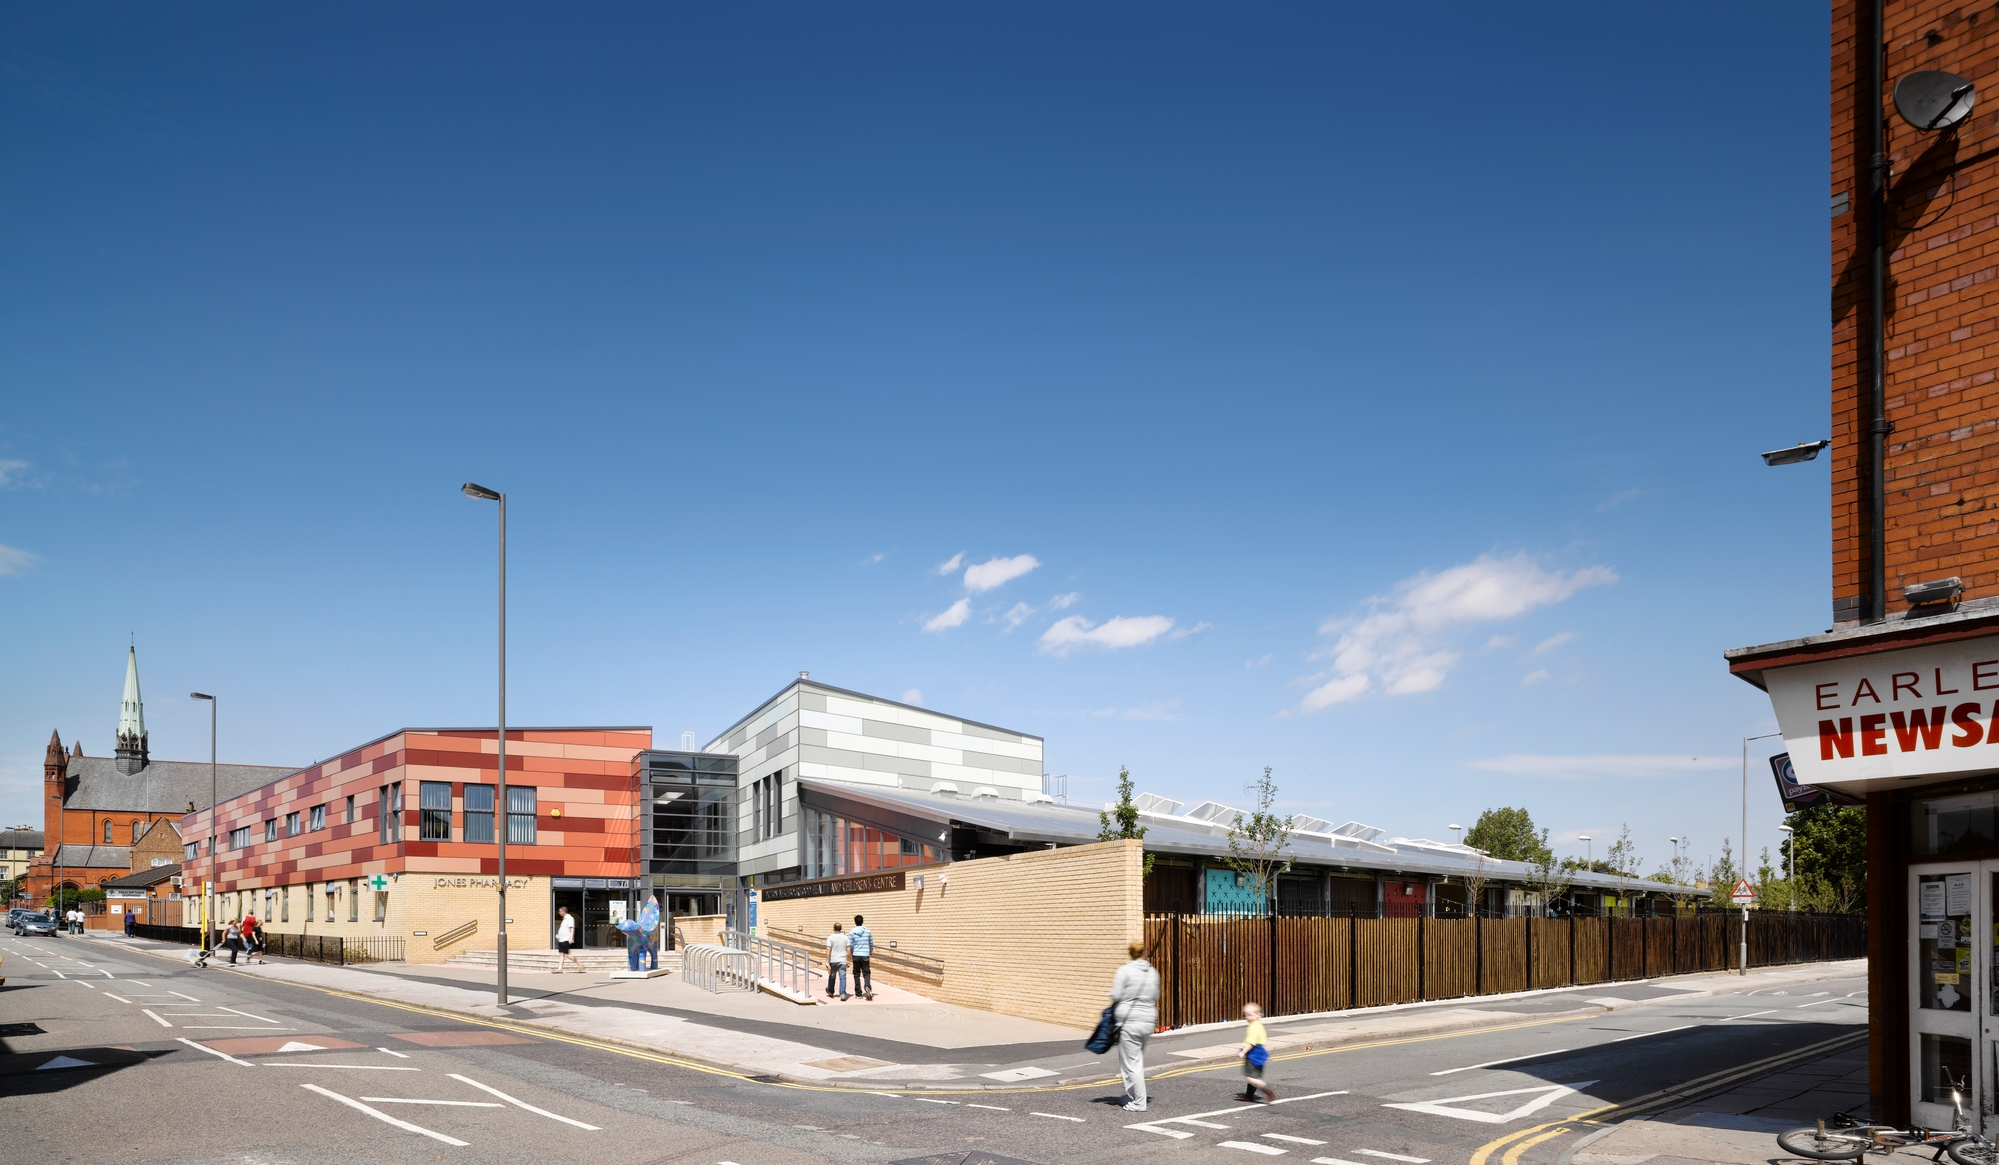 Picton Health and Community Centre